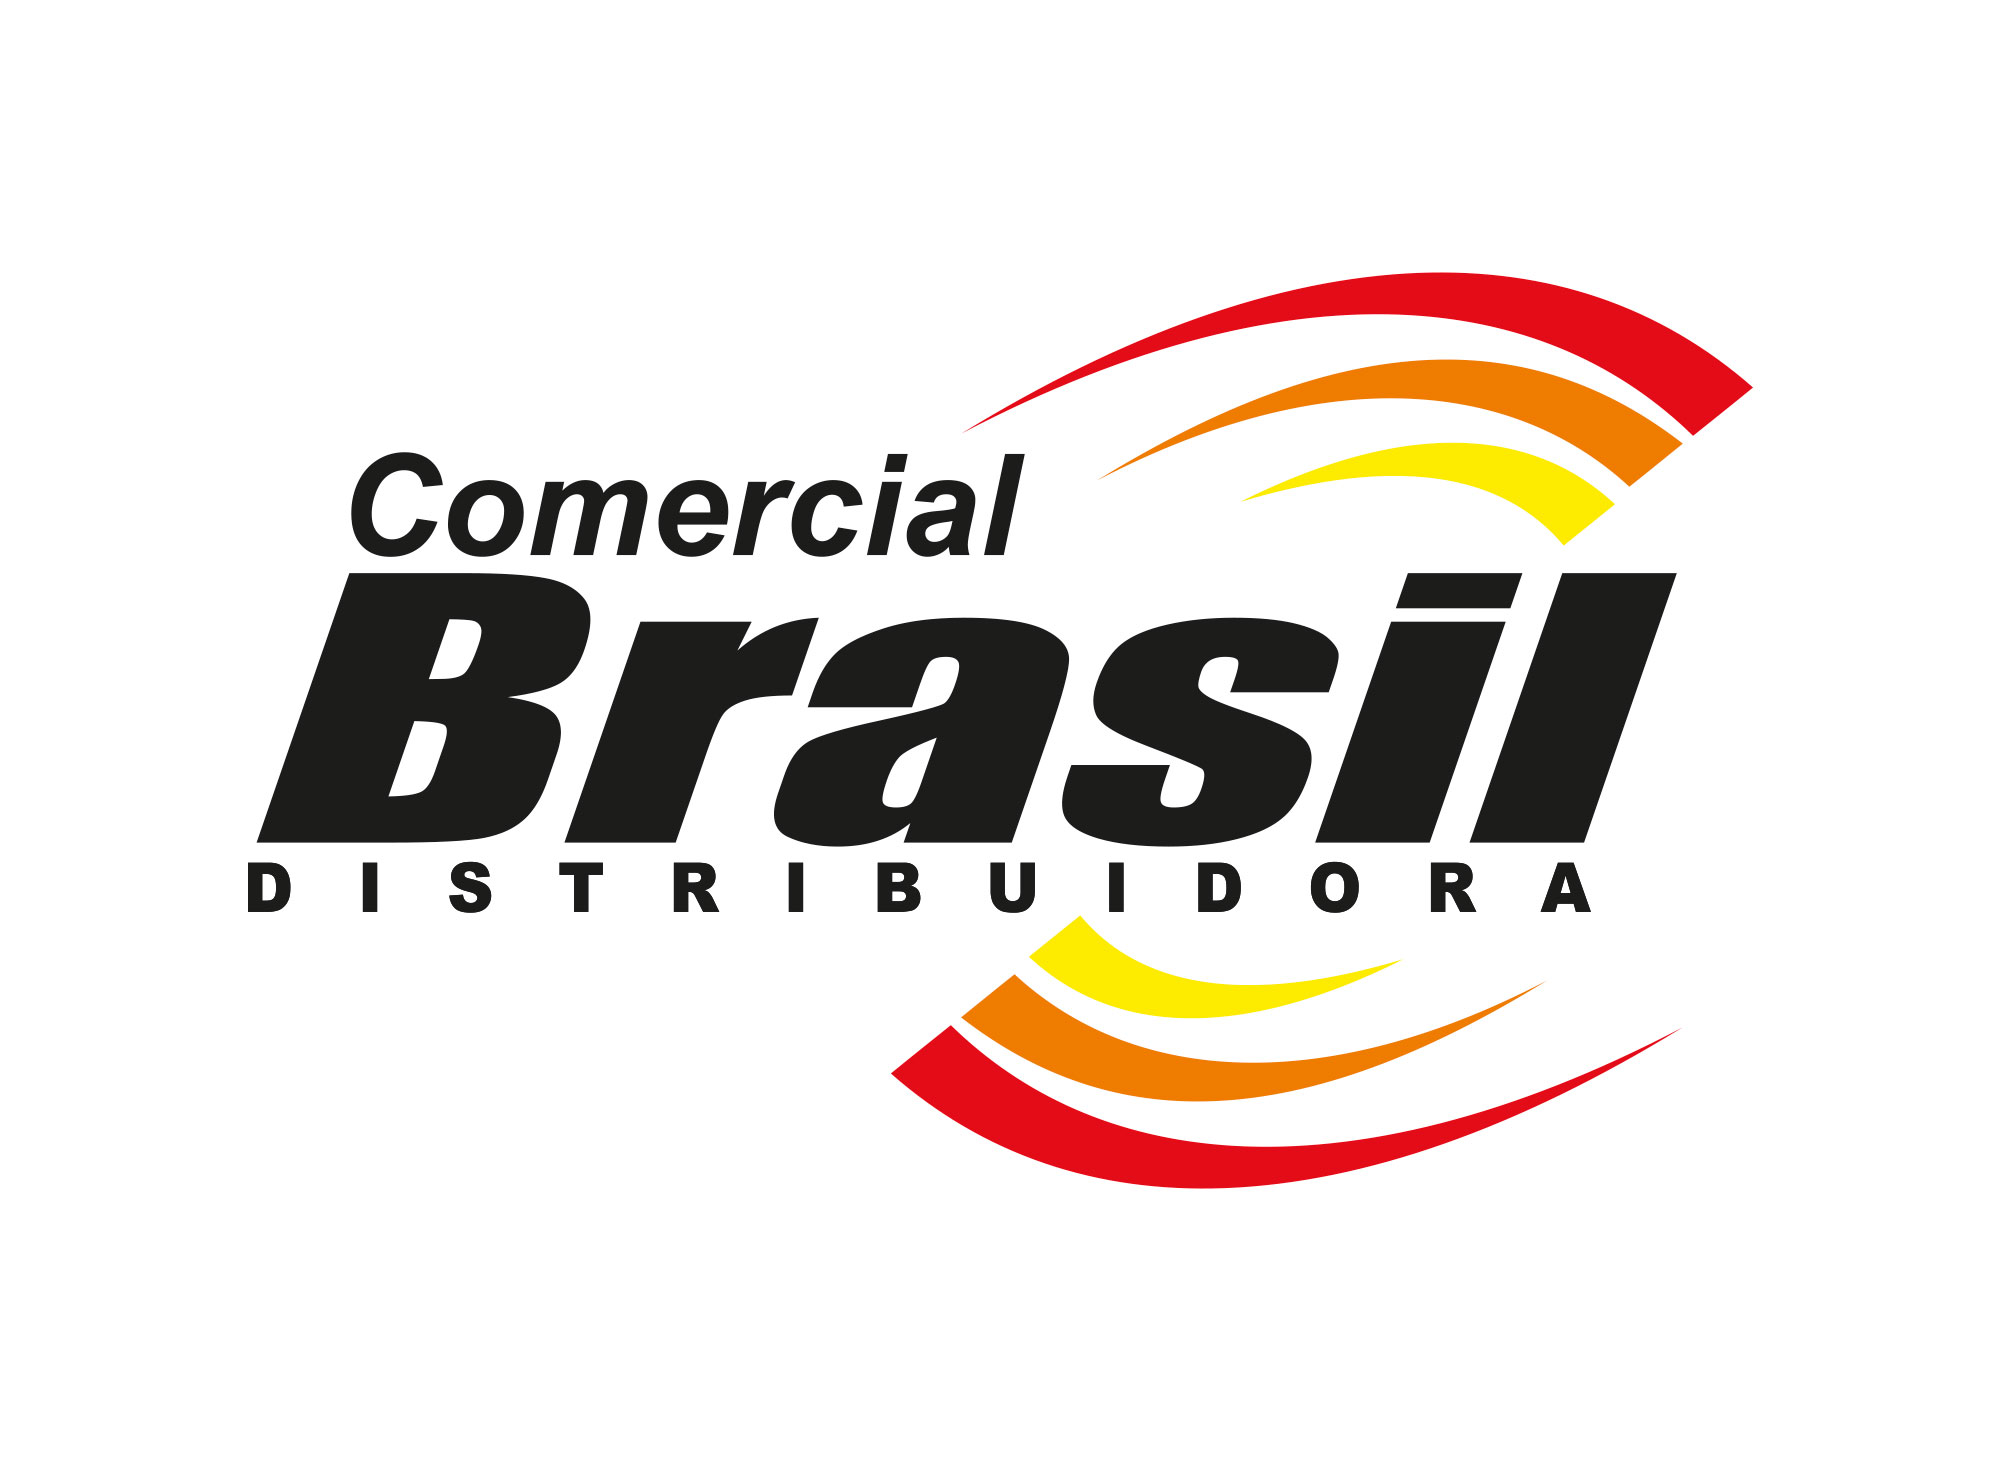 comercial-brasil-distribuidora-cml-clientes-agencia-diretriz-digital-marketing-loja-virtual-fortaleza